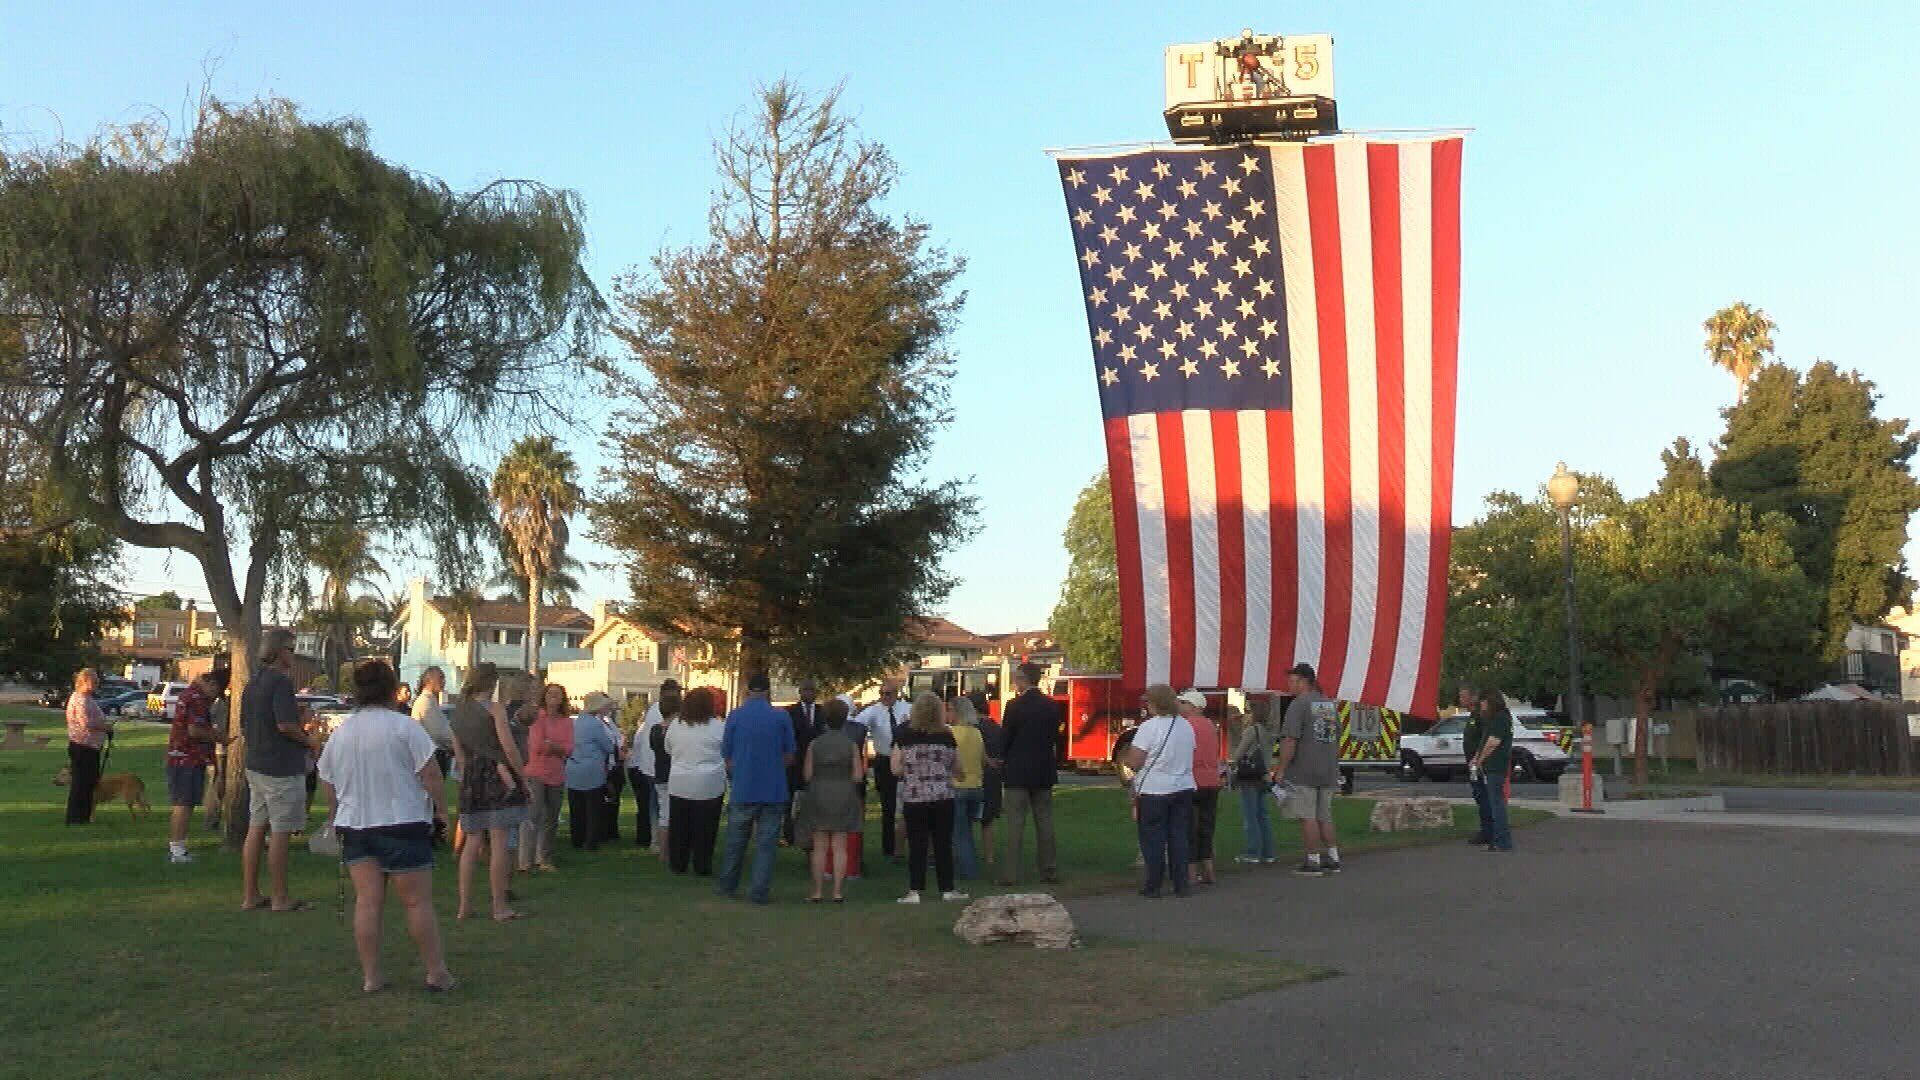 The community gathered for a ceremony in remembrance of 9/11 victims. (KSBY photo)